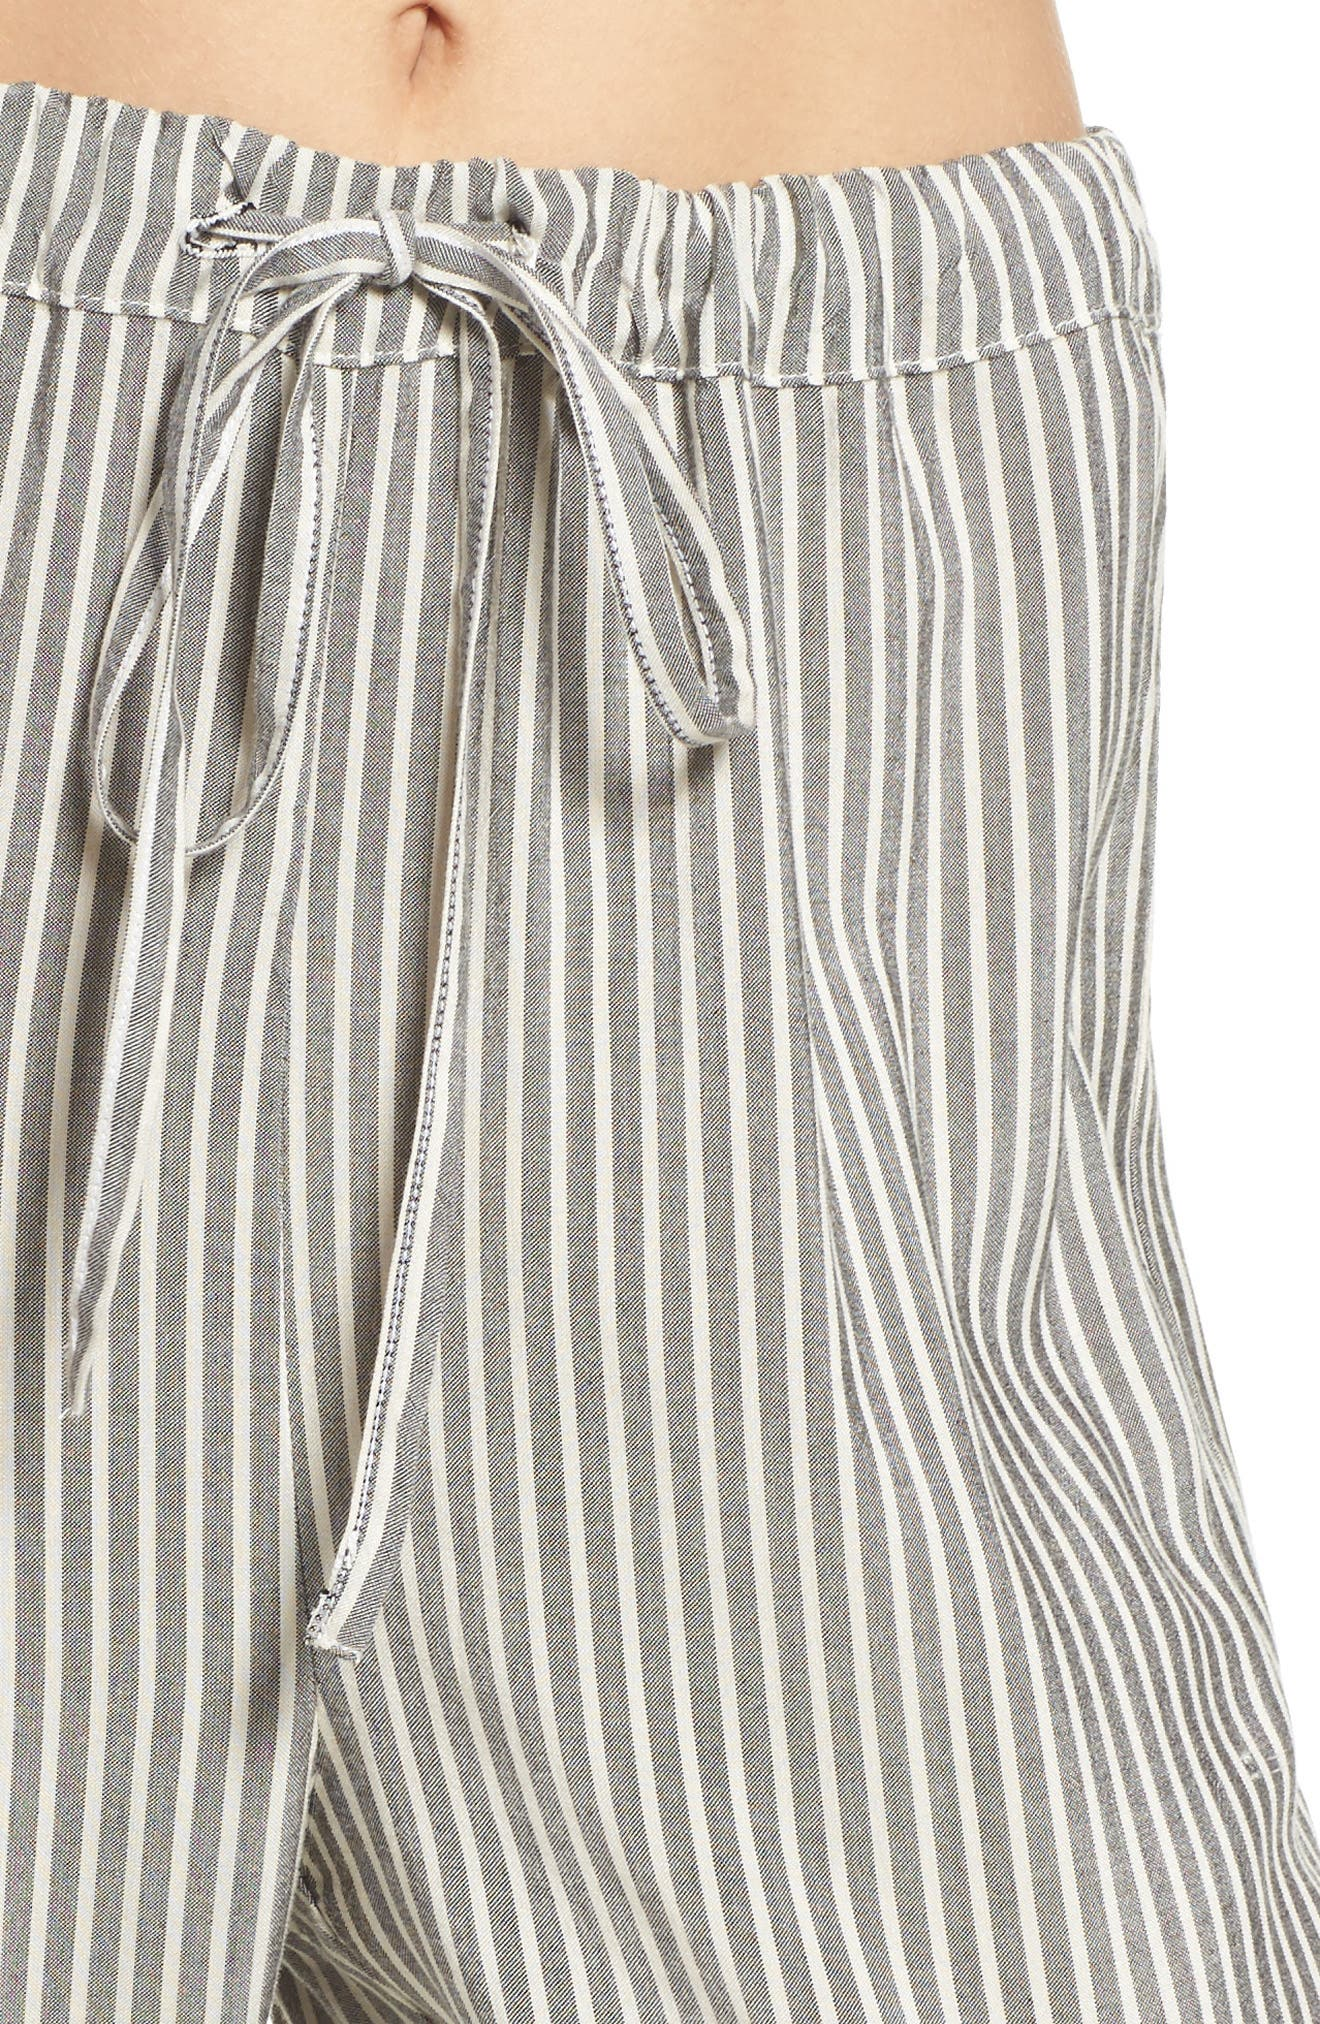 Stripe Pajama Pants,                             Alternate thumbnail 6, color,                             Grey Stripe